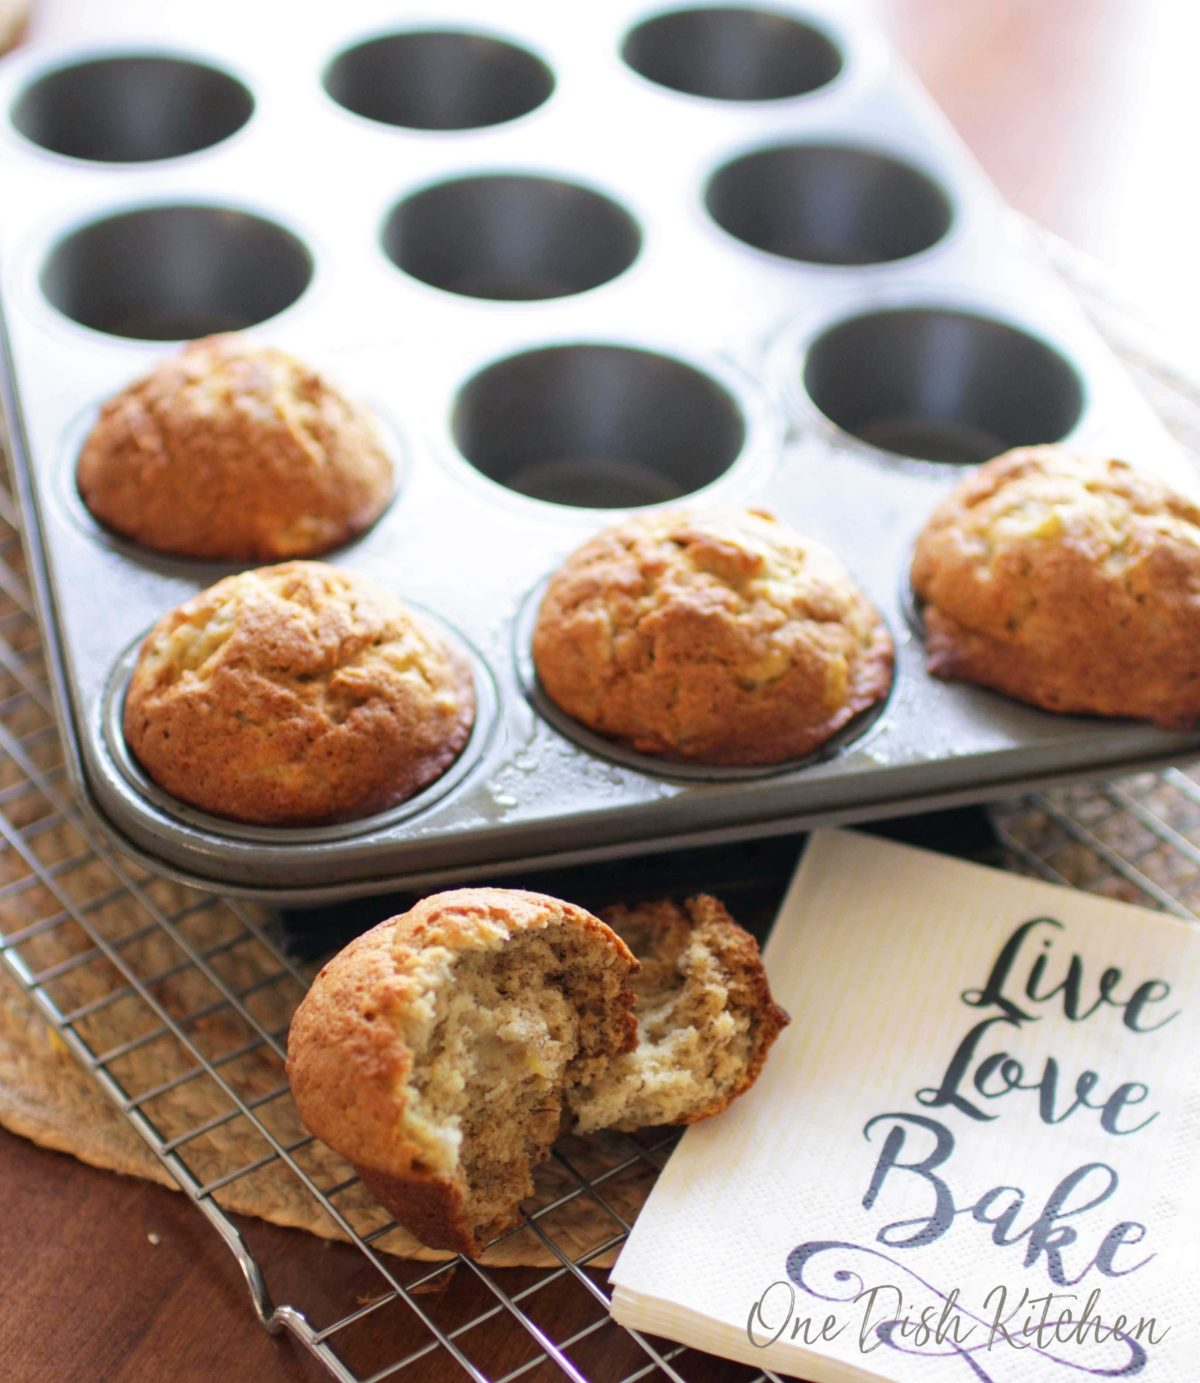 Four banana muffins in a muffin tin and a muffin split in half on a cooling rack